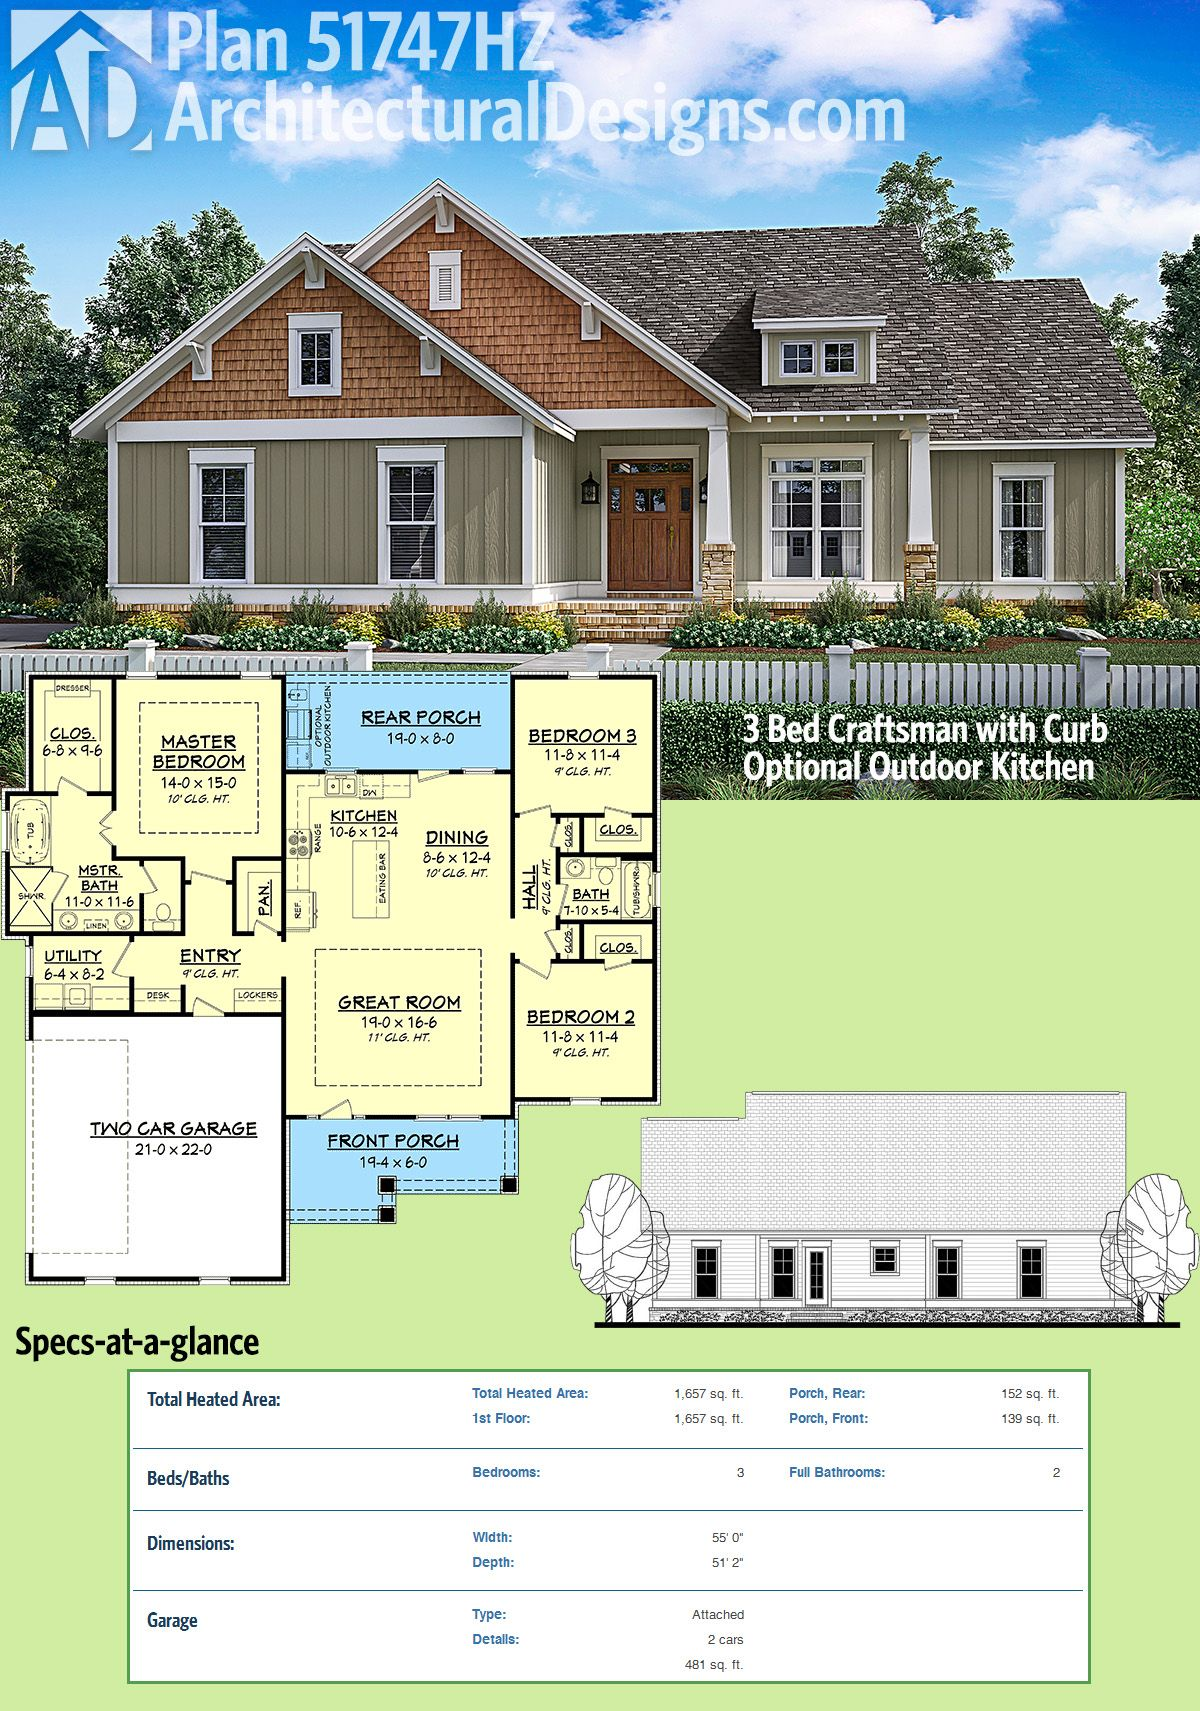 46bab9d376f348c7e969c7d65645bc34 Top Result 52 Best Of Craftsman Style Home Plans Photography 2017 Hdj5